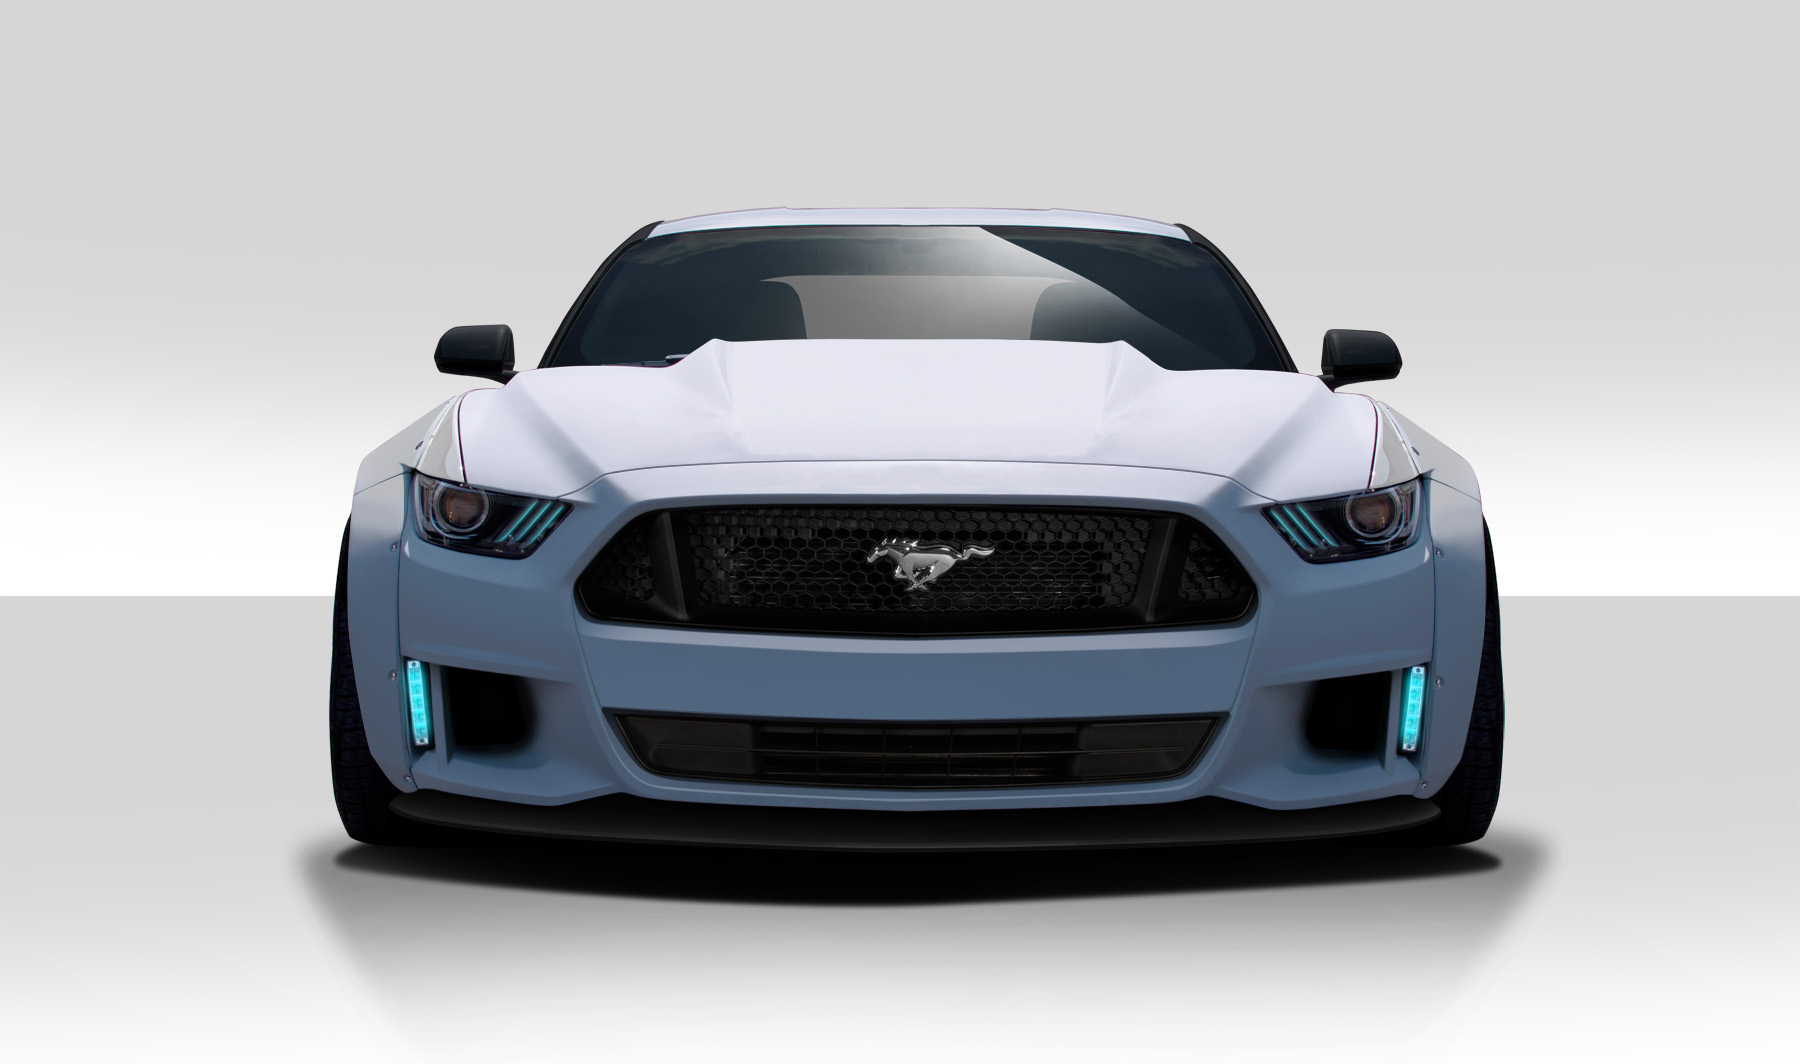 1 Piece Duraflex Replacement for 2010-2012 Ford Mustang Circuit Hood